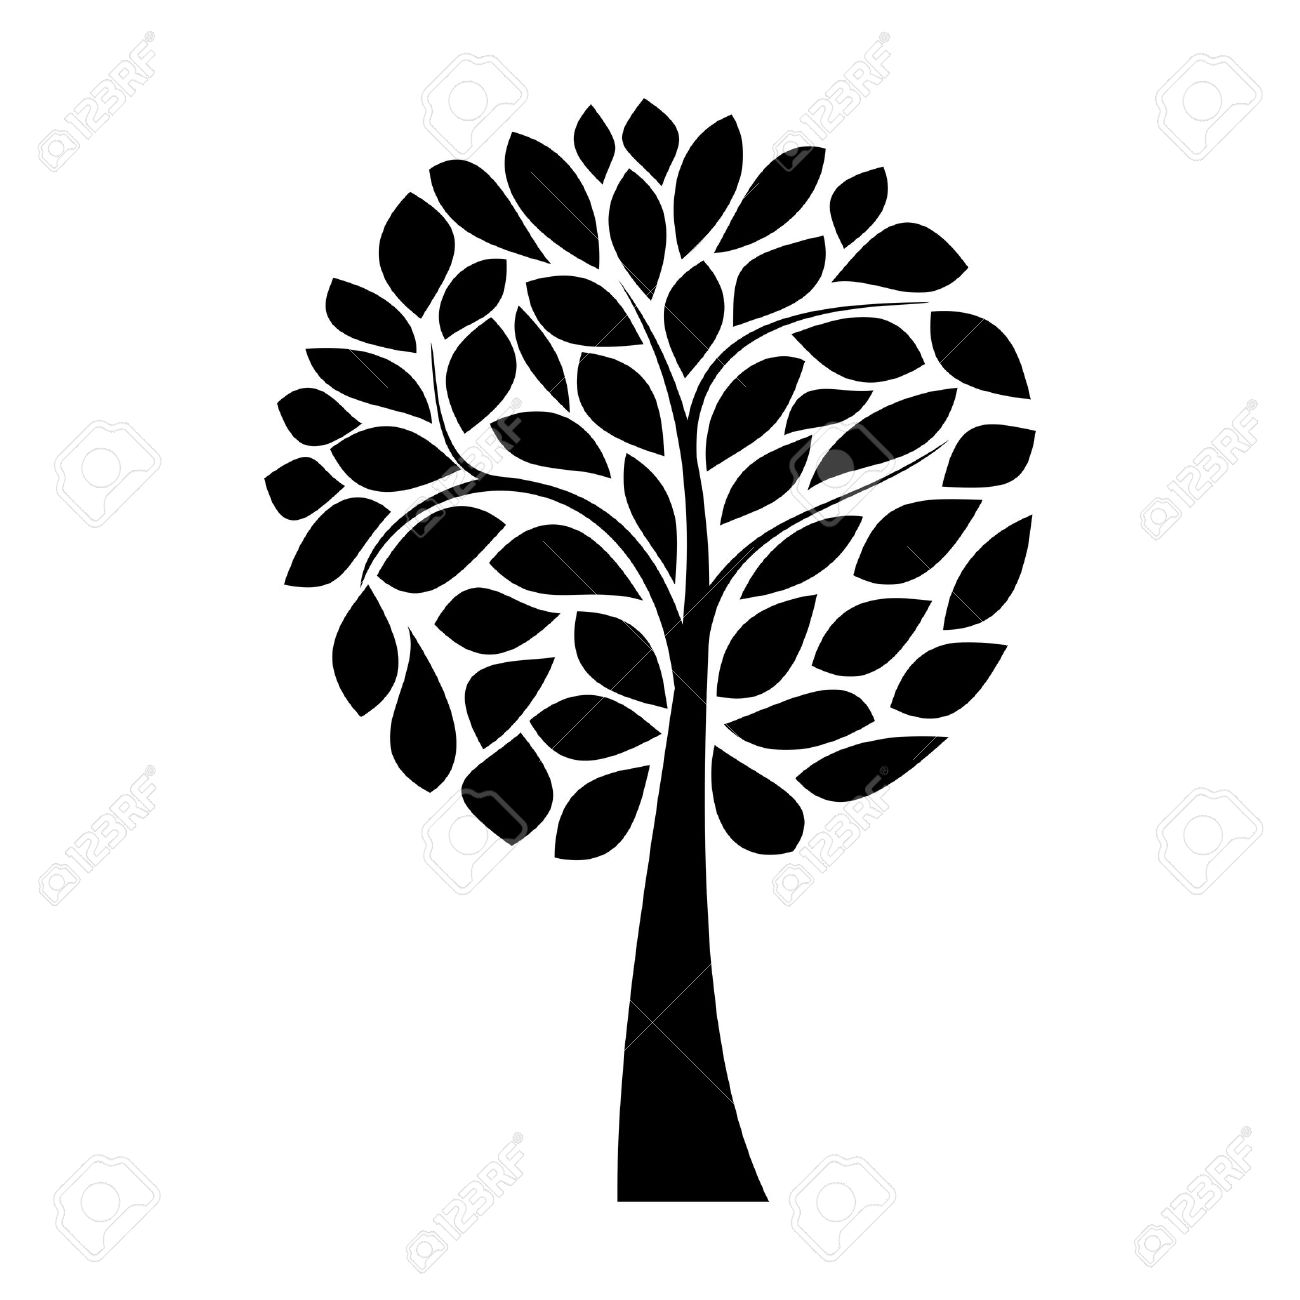 simple black tree silhouette on white background royalty free rh 123rf com tree silhouette vector download tree silhouette vector illustrator